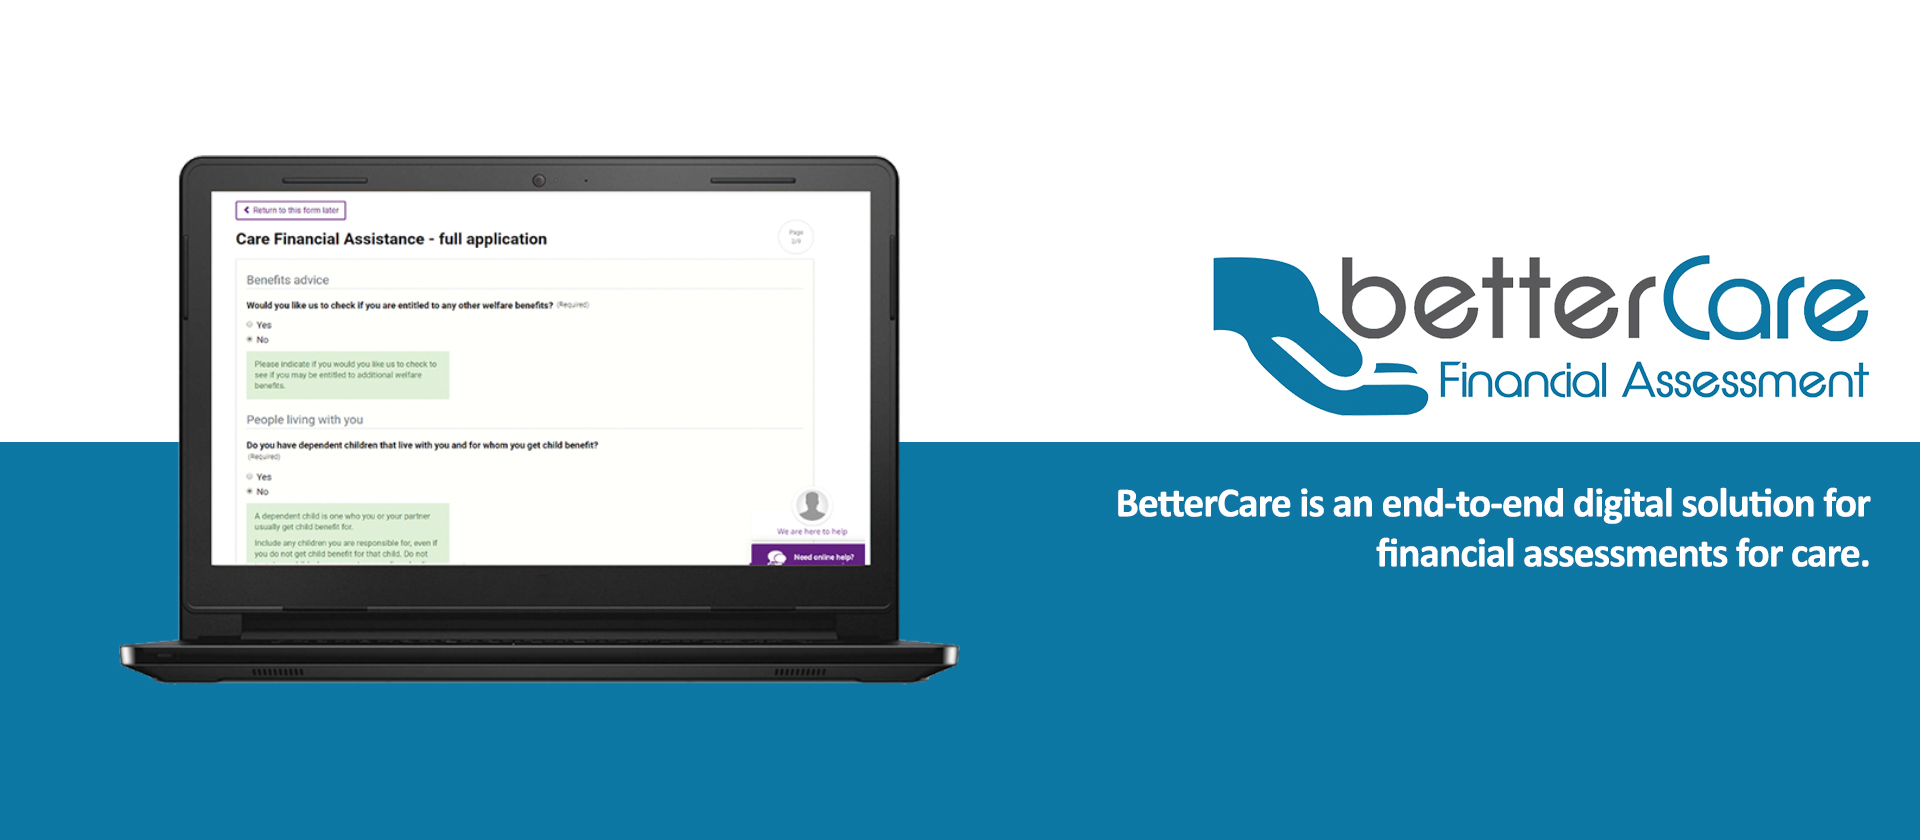 Looking Local - BetterCare Financial Assessment